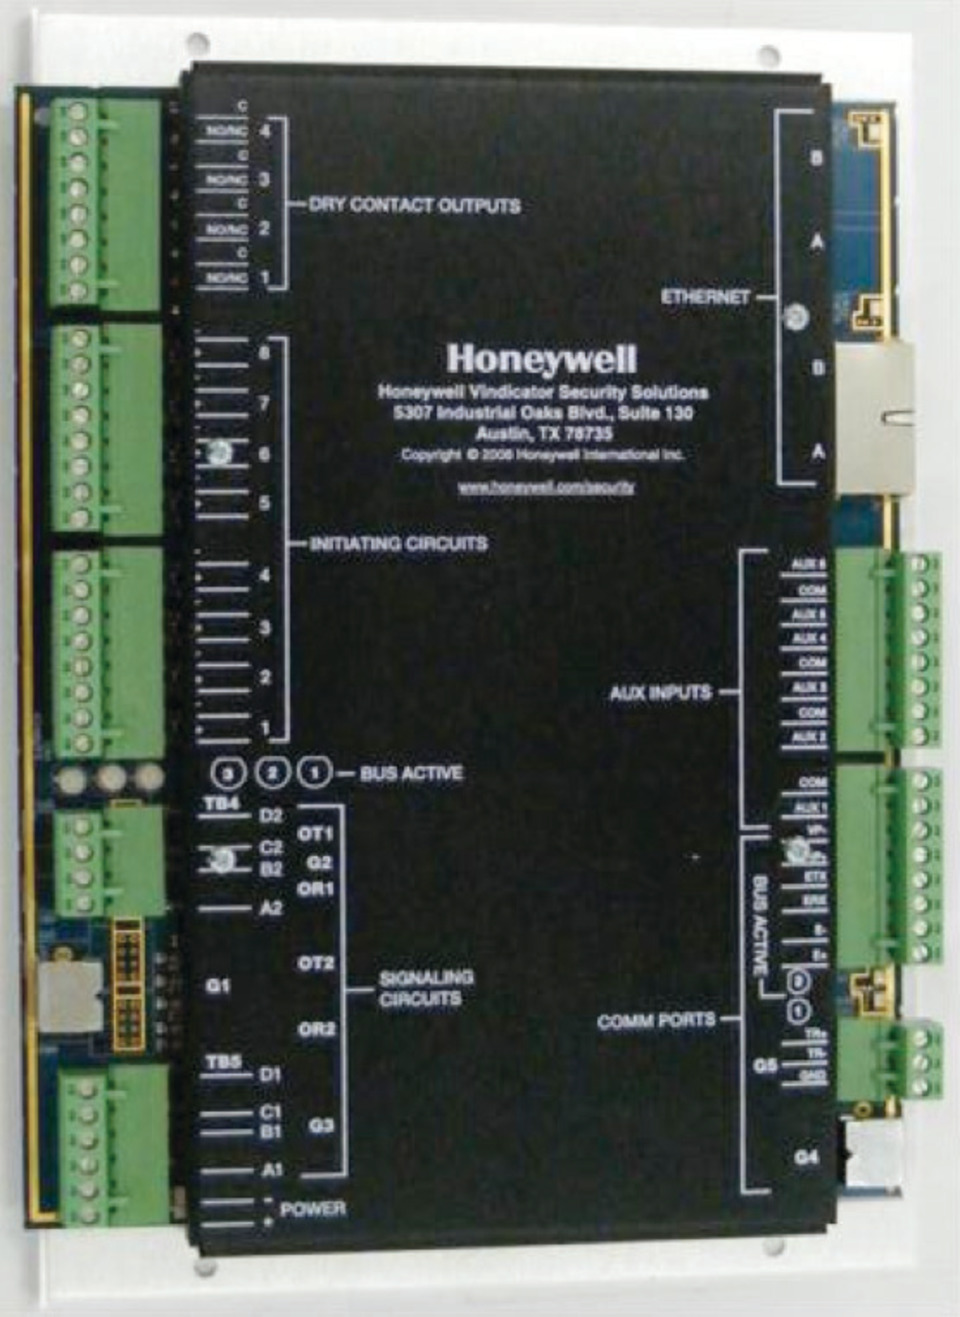 Honeywell Uhs 1500 Device In Computer And Network Security